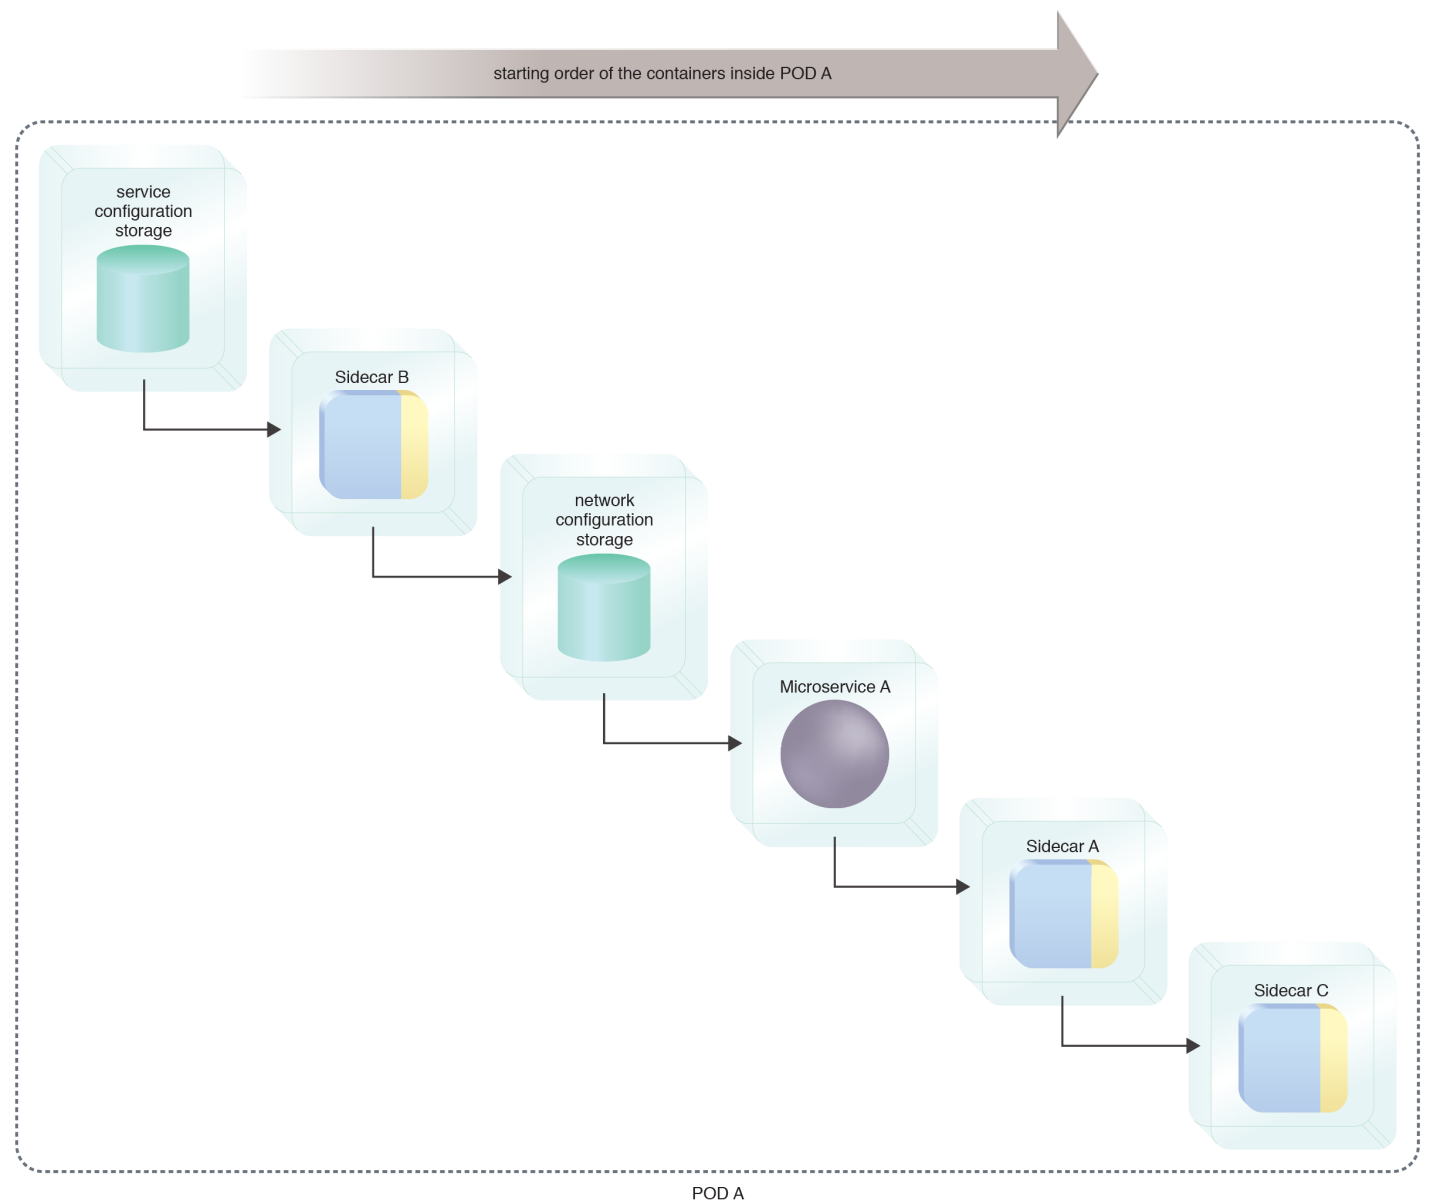 Container Chain: A pre-scheduled start-up sequence of Microservice A and its components.